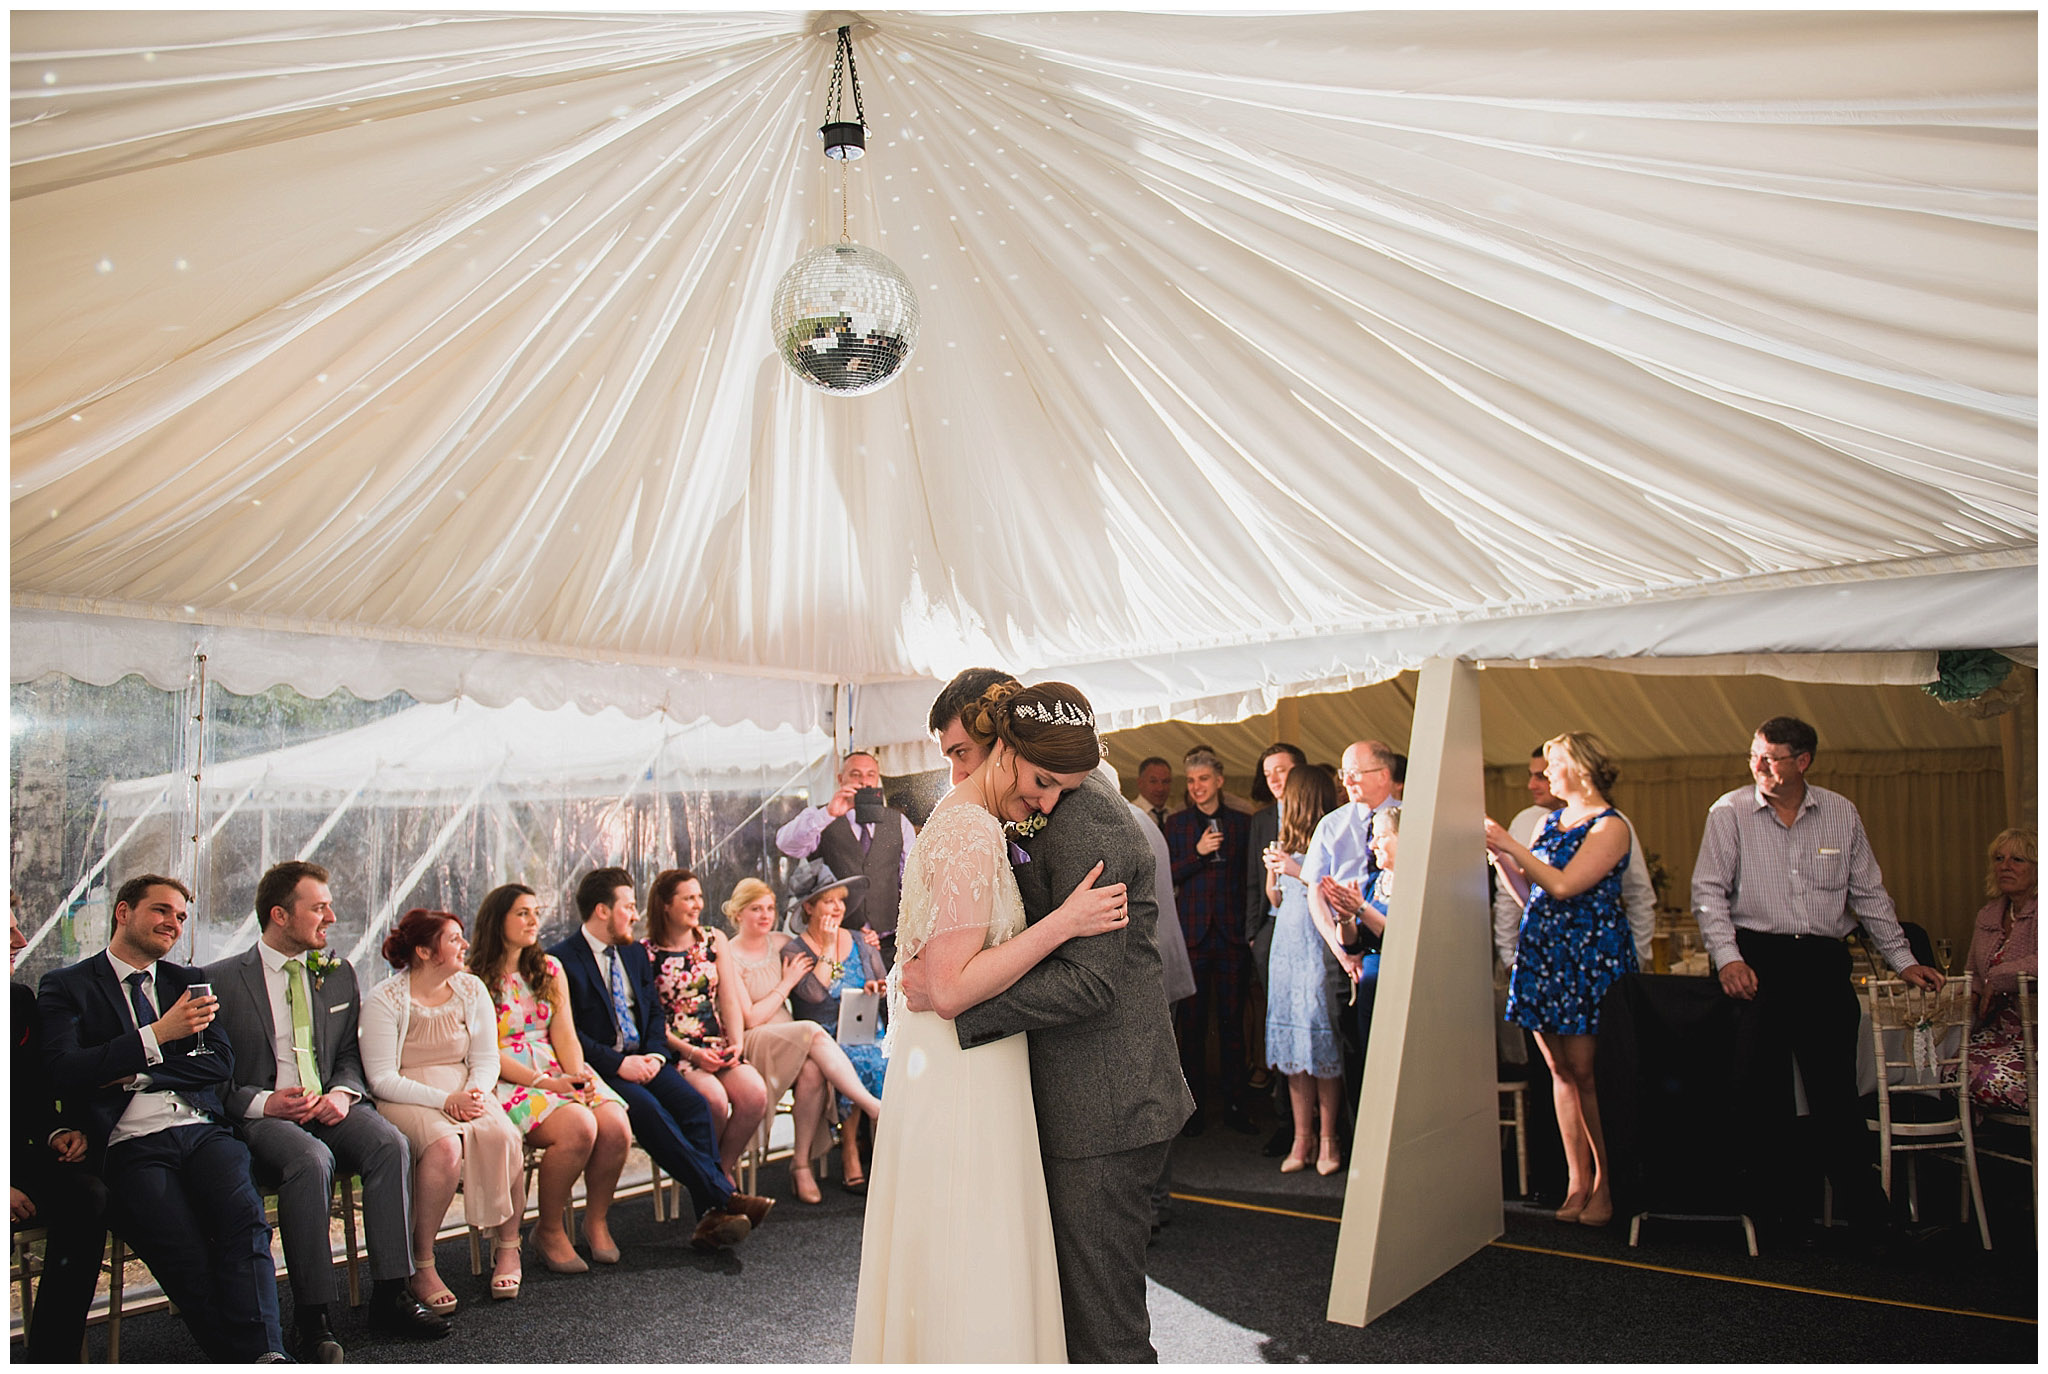 Sarah-&-Dan-The-Old-Vicarage-Wedding-Venue-Dorset-Photographer-42